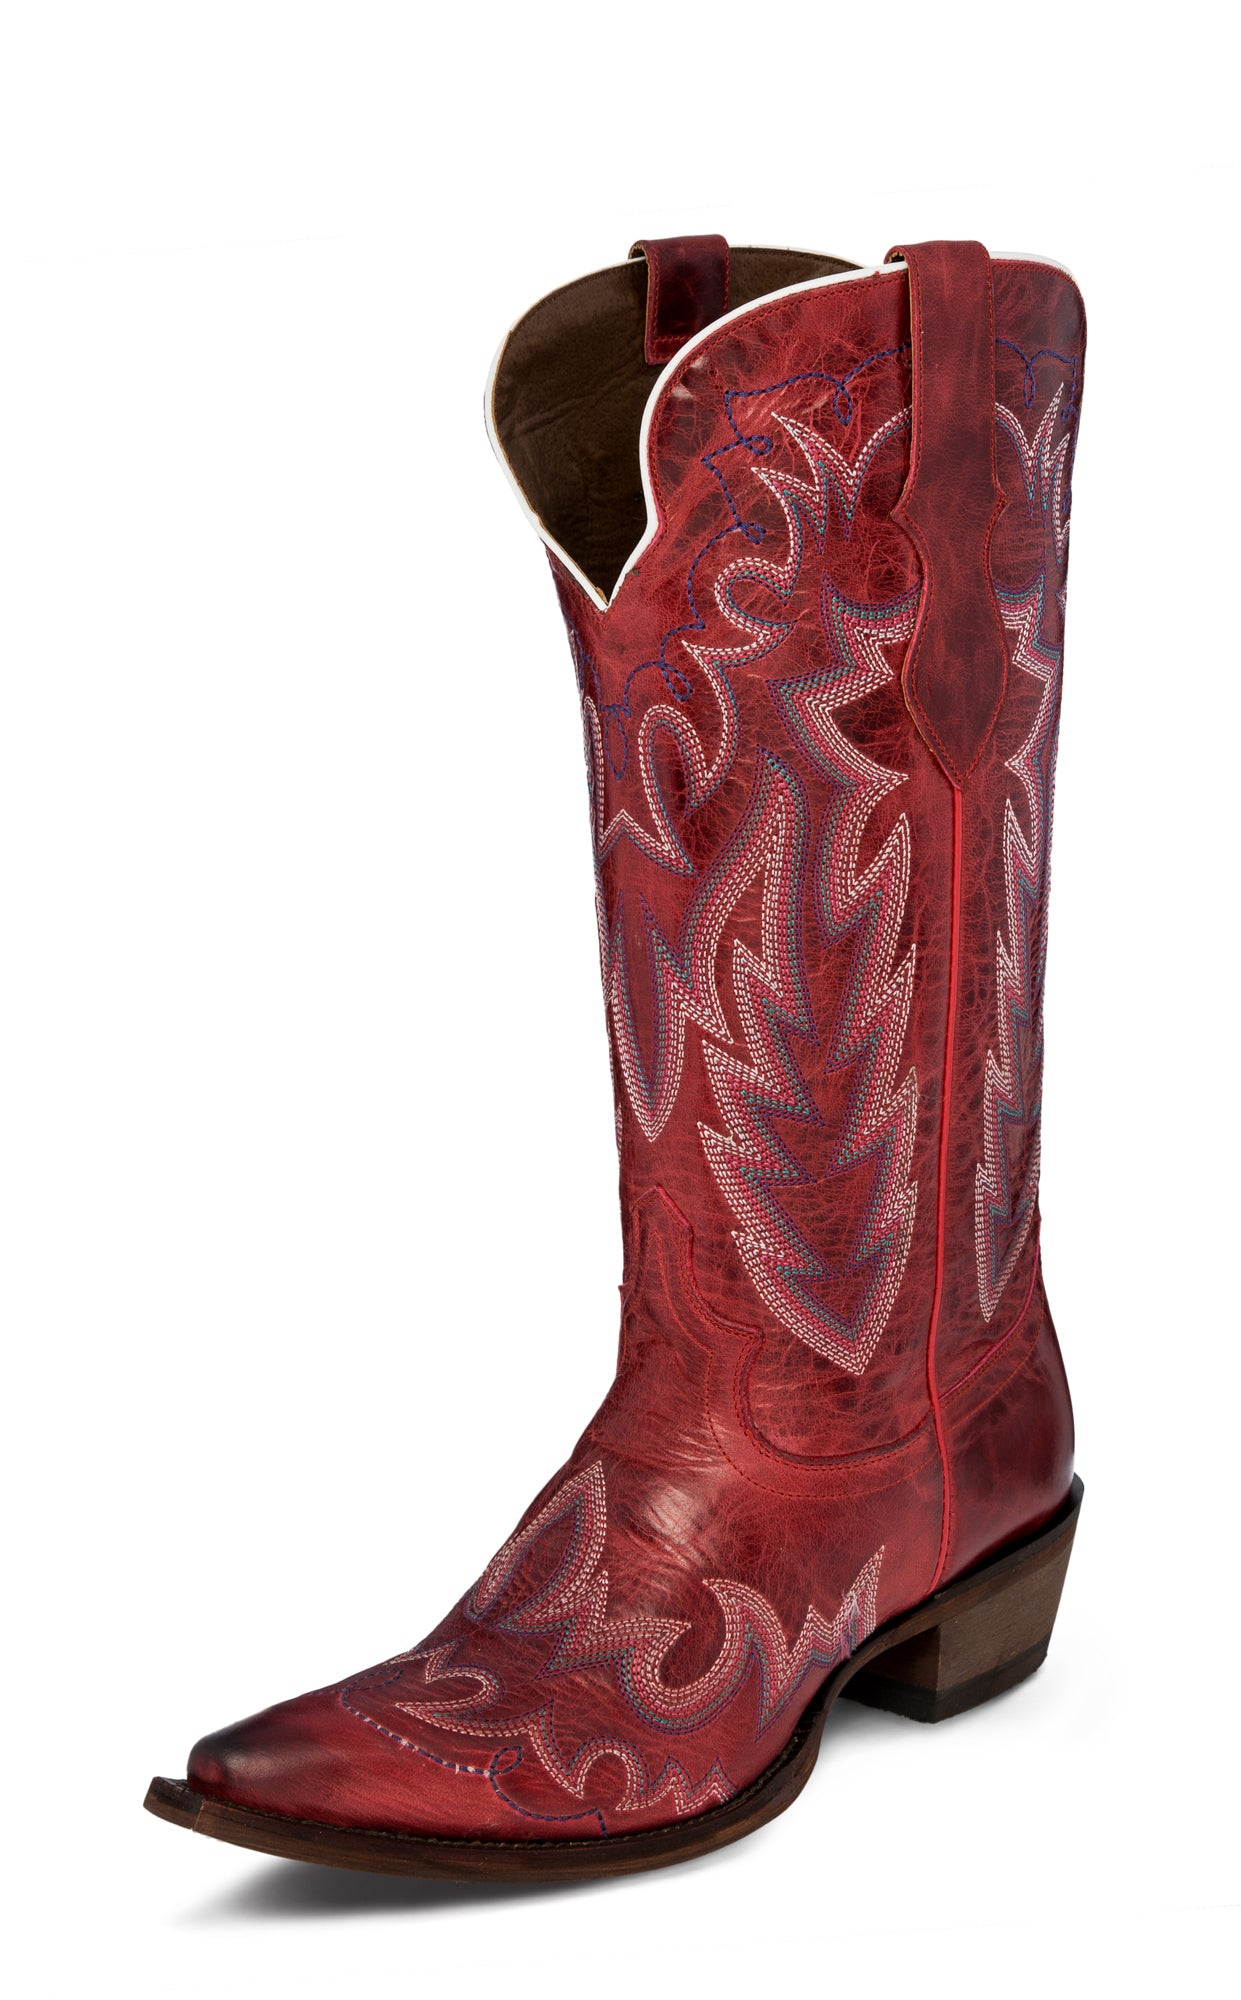 180258d0f66 Justin Womens Redstone Elina Leather Cowboy Boots